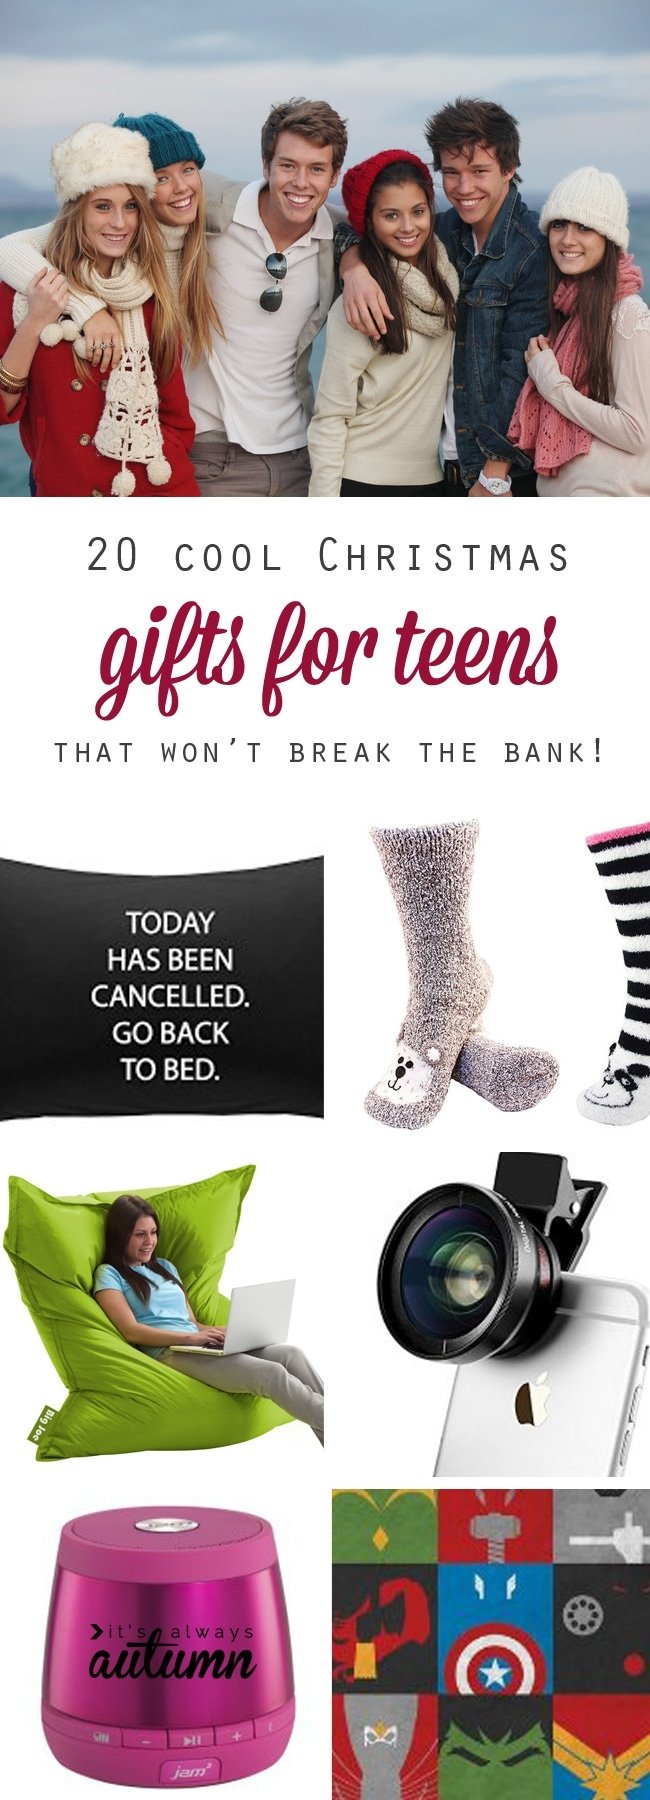 10 Gorgeous Christmas Gift Ideas Teenage Girls best christmas gift ideas for teens its always autumn 9 2021